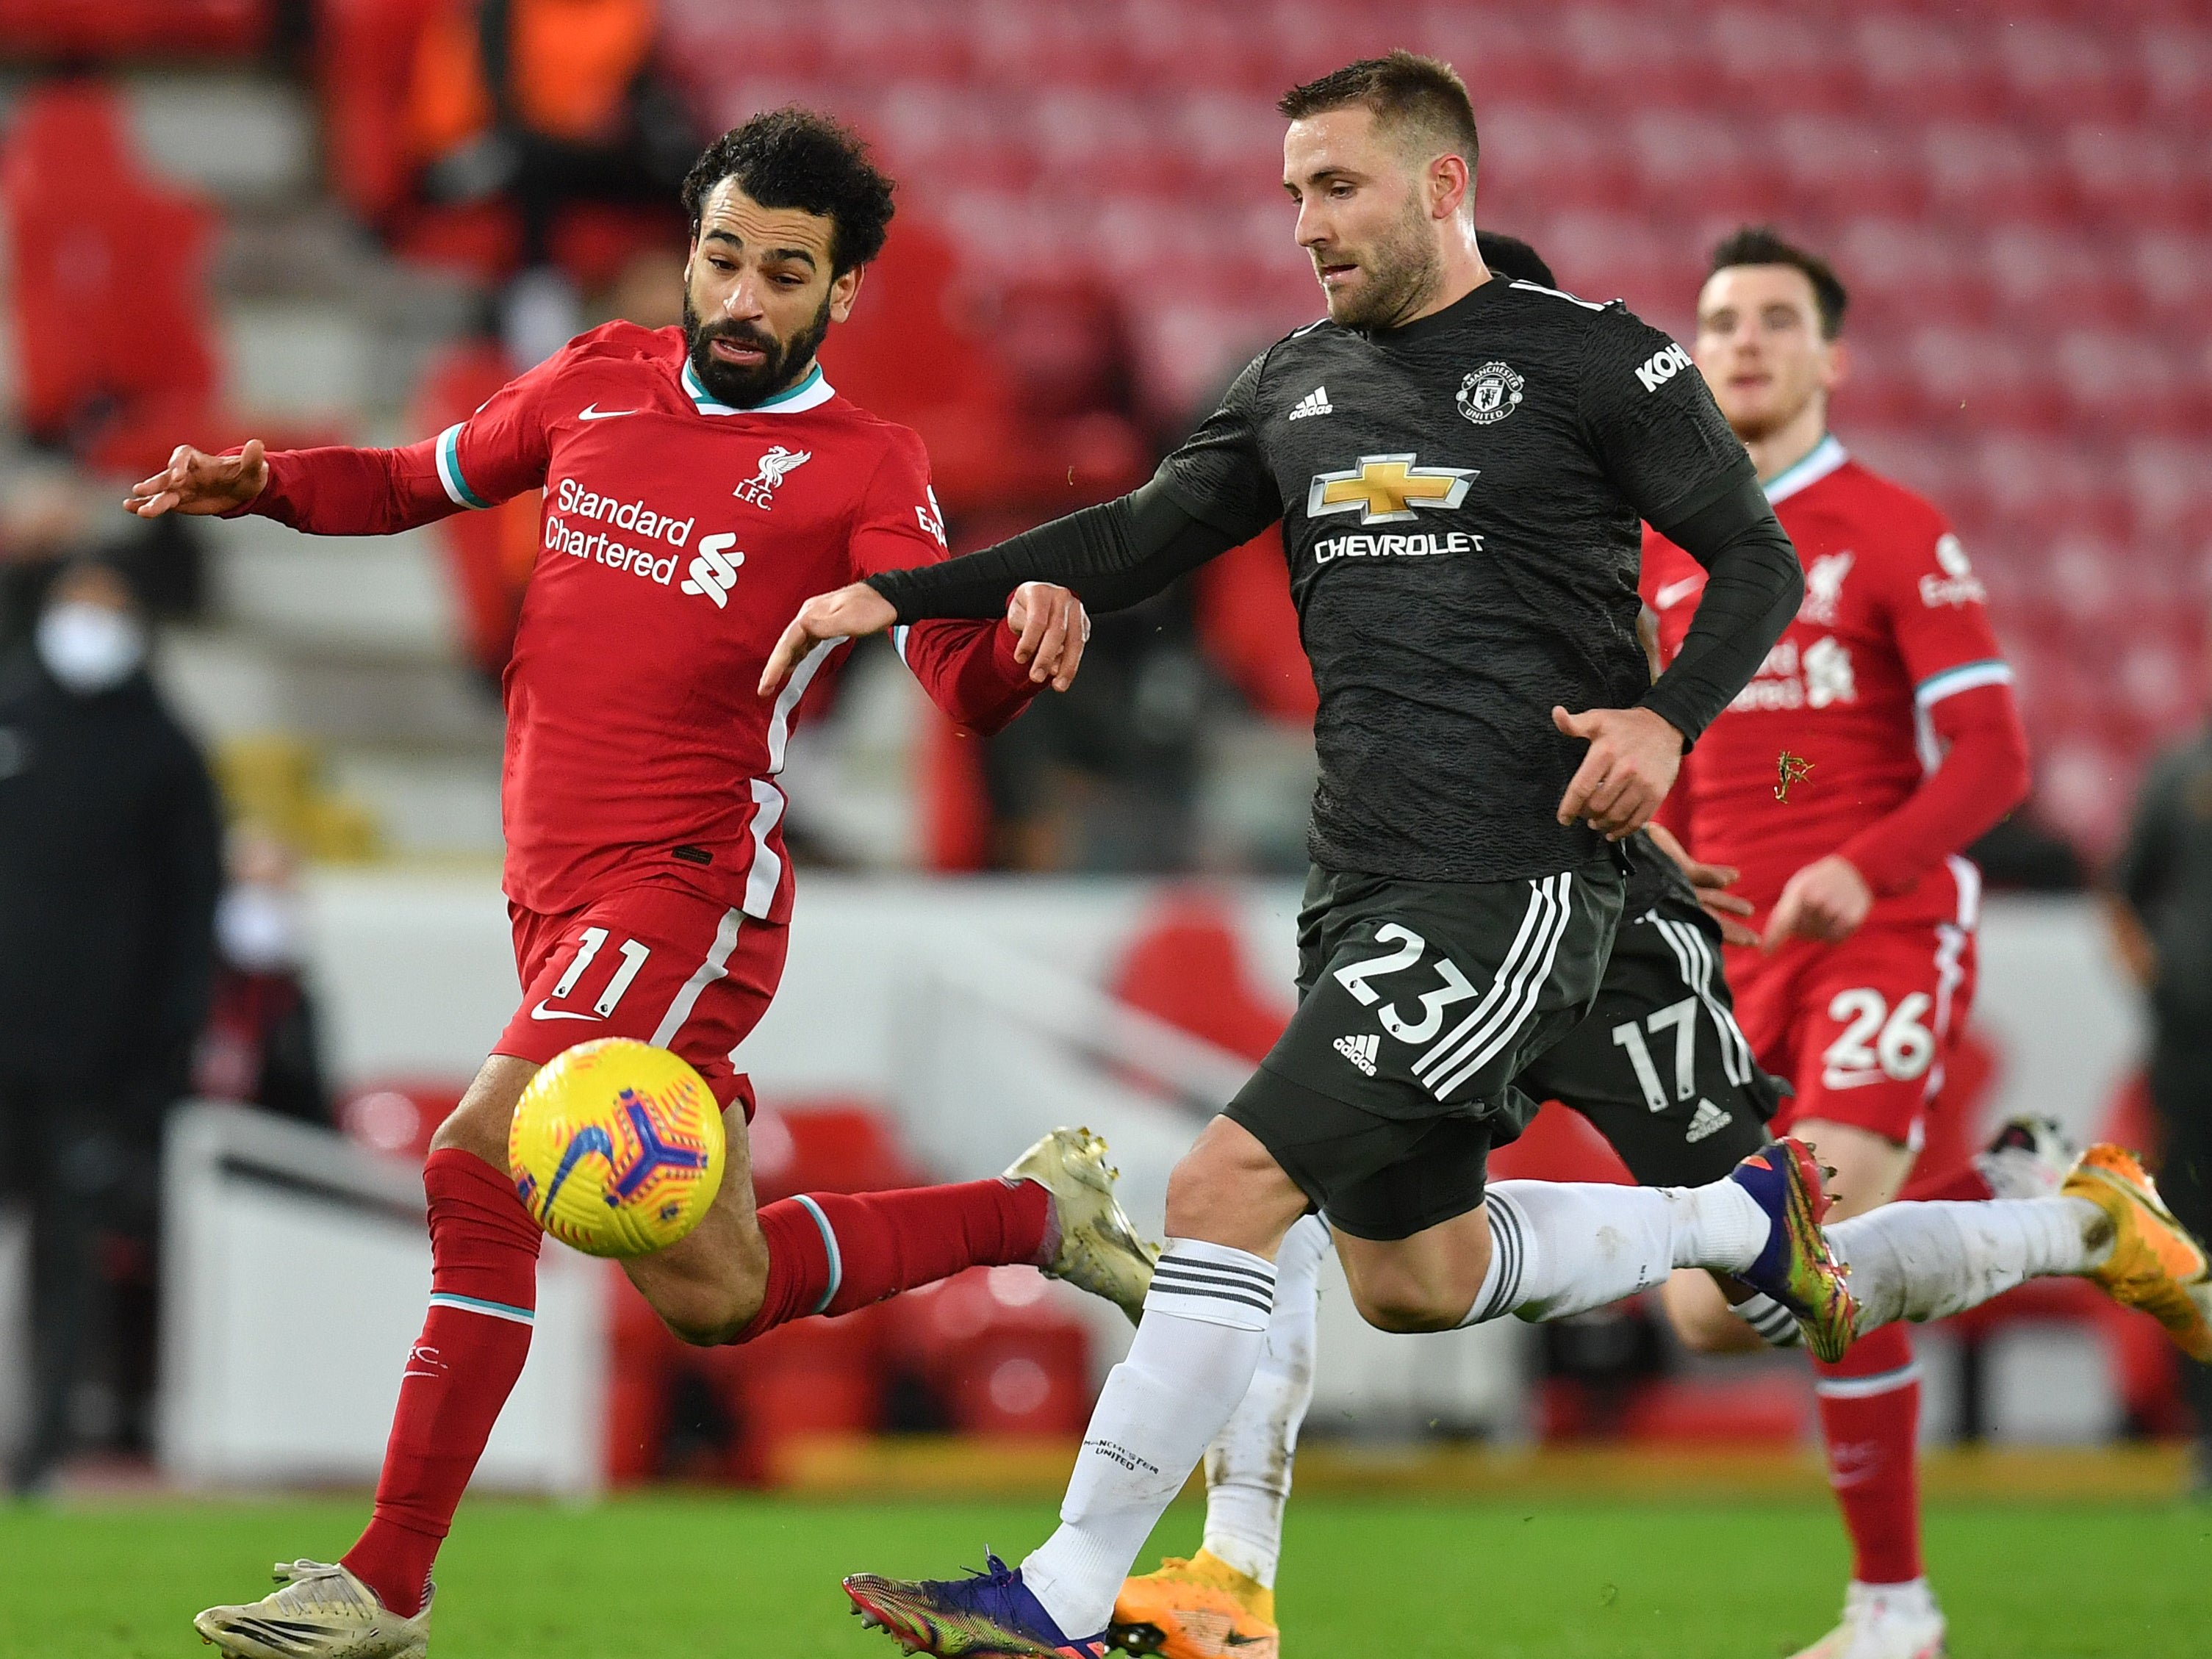 Luke Shaw: Ole Gunnar Solskjaer reveals one-on-one chats with in-form Manchester United defender